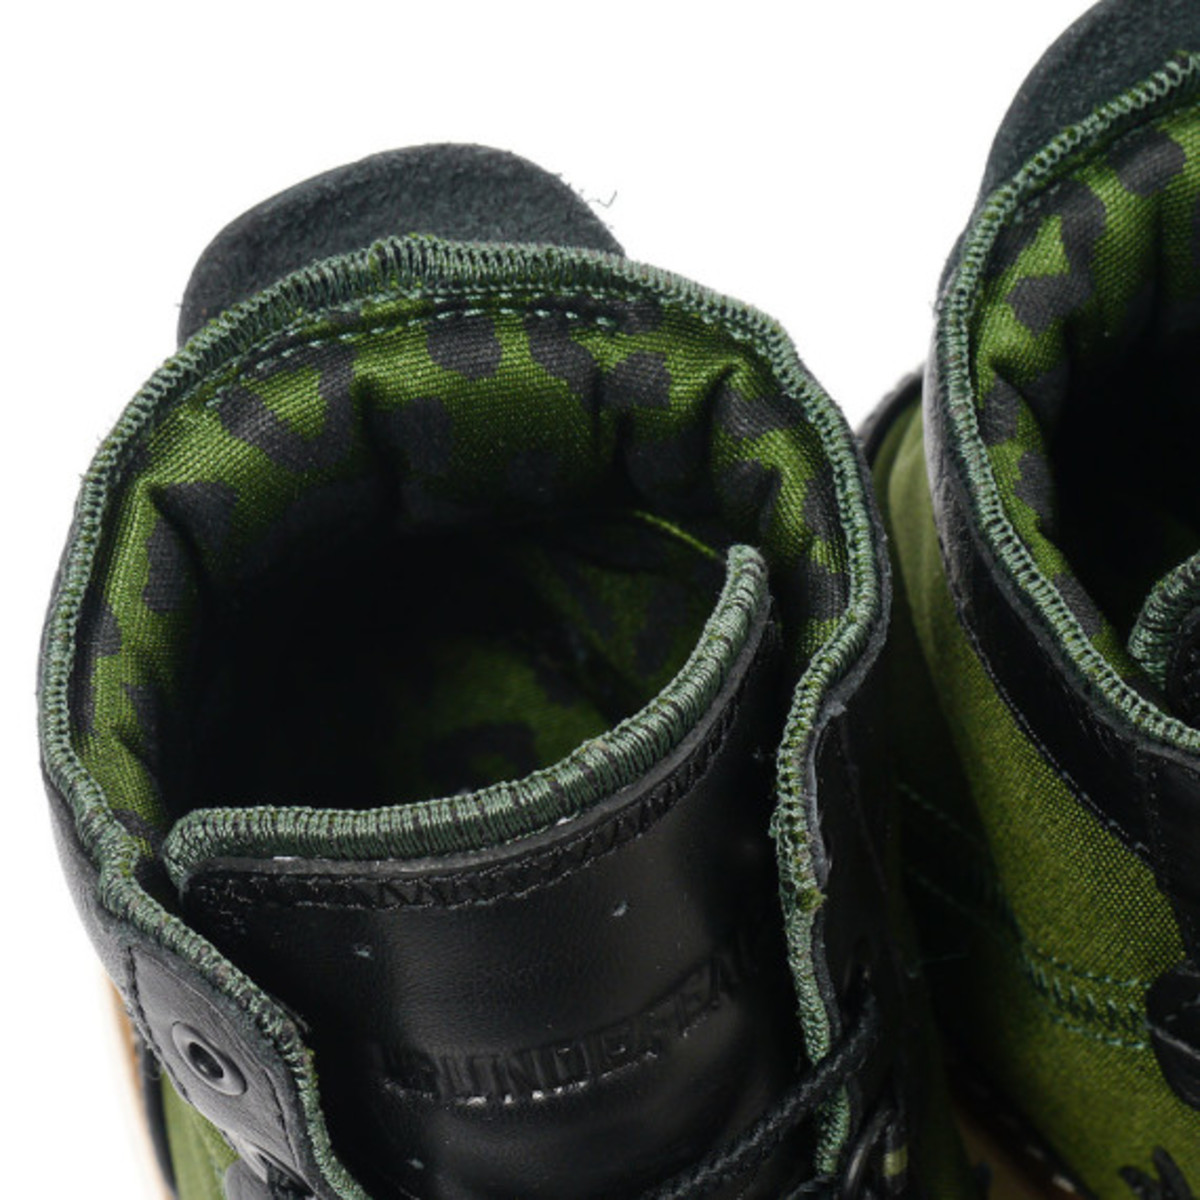 UNDEFEATED x CONVERSE Pro Field Hi   Available Now - 3